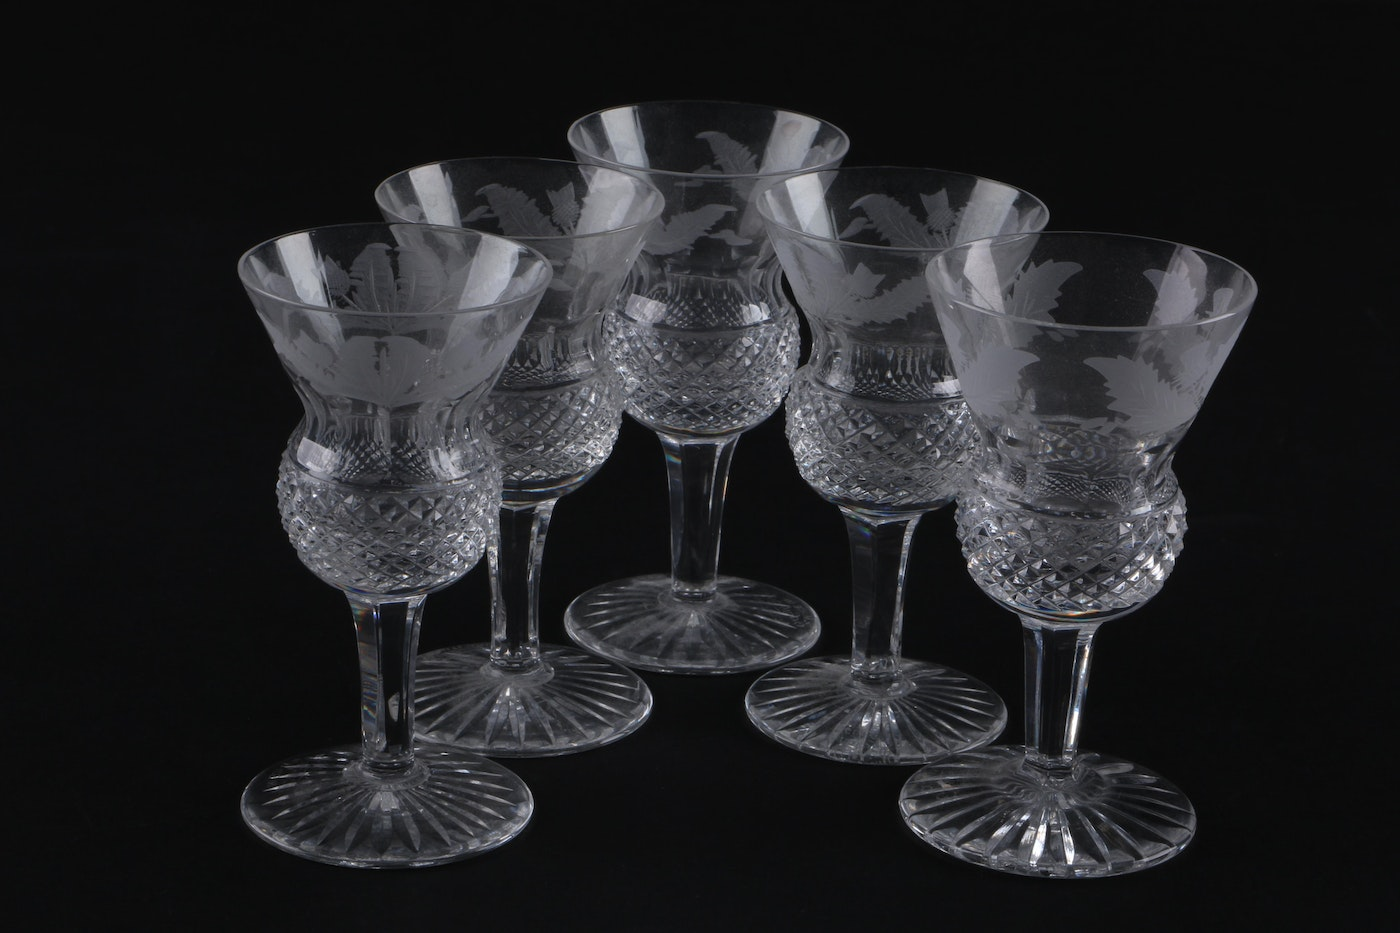 Crystal Decanter And Brandy Glasses